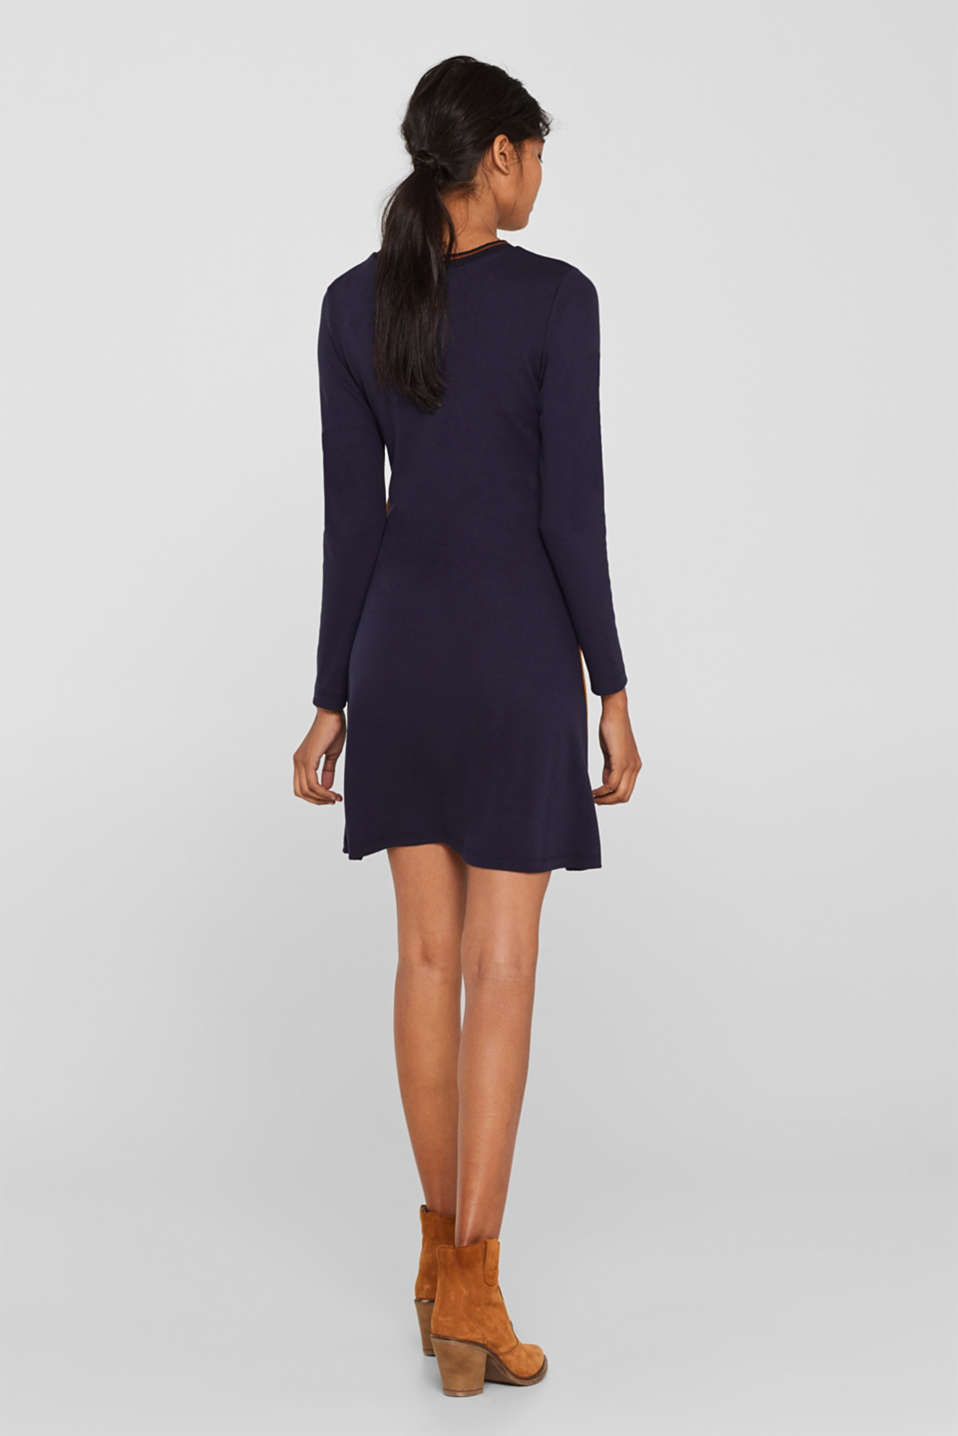 Piped stretch jersey dress, NAVY, detail image number 2